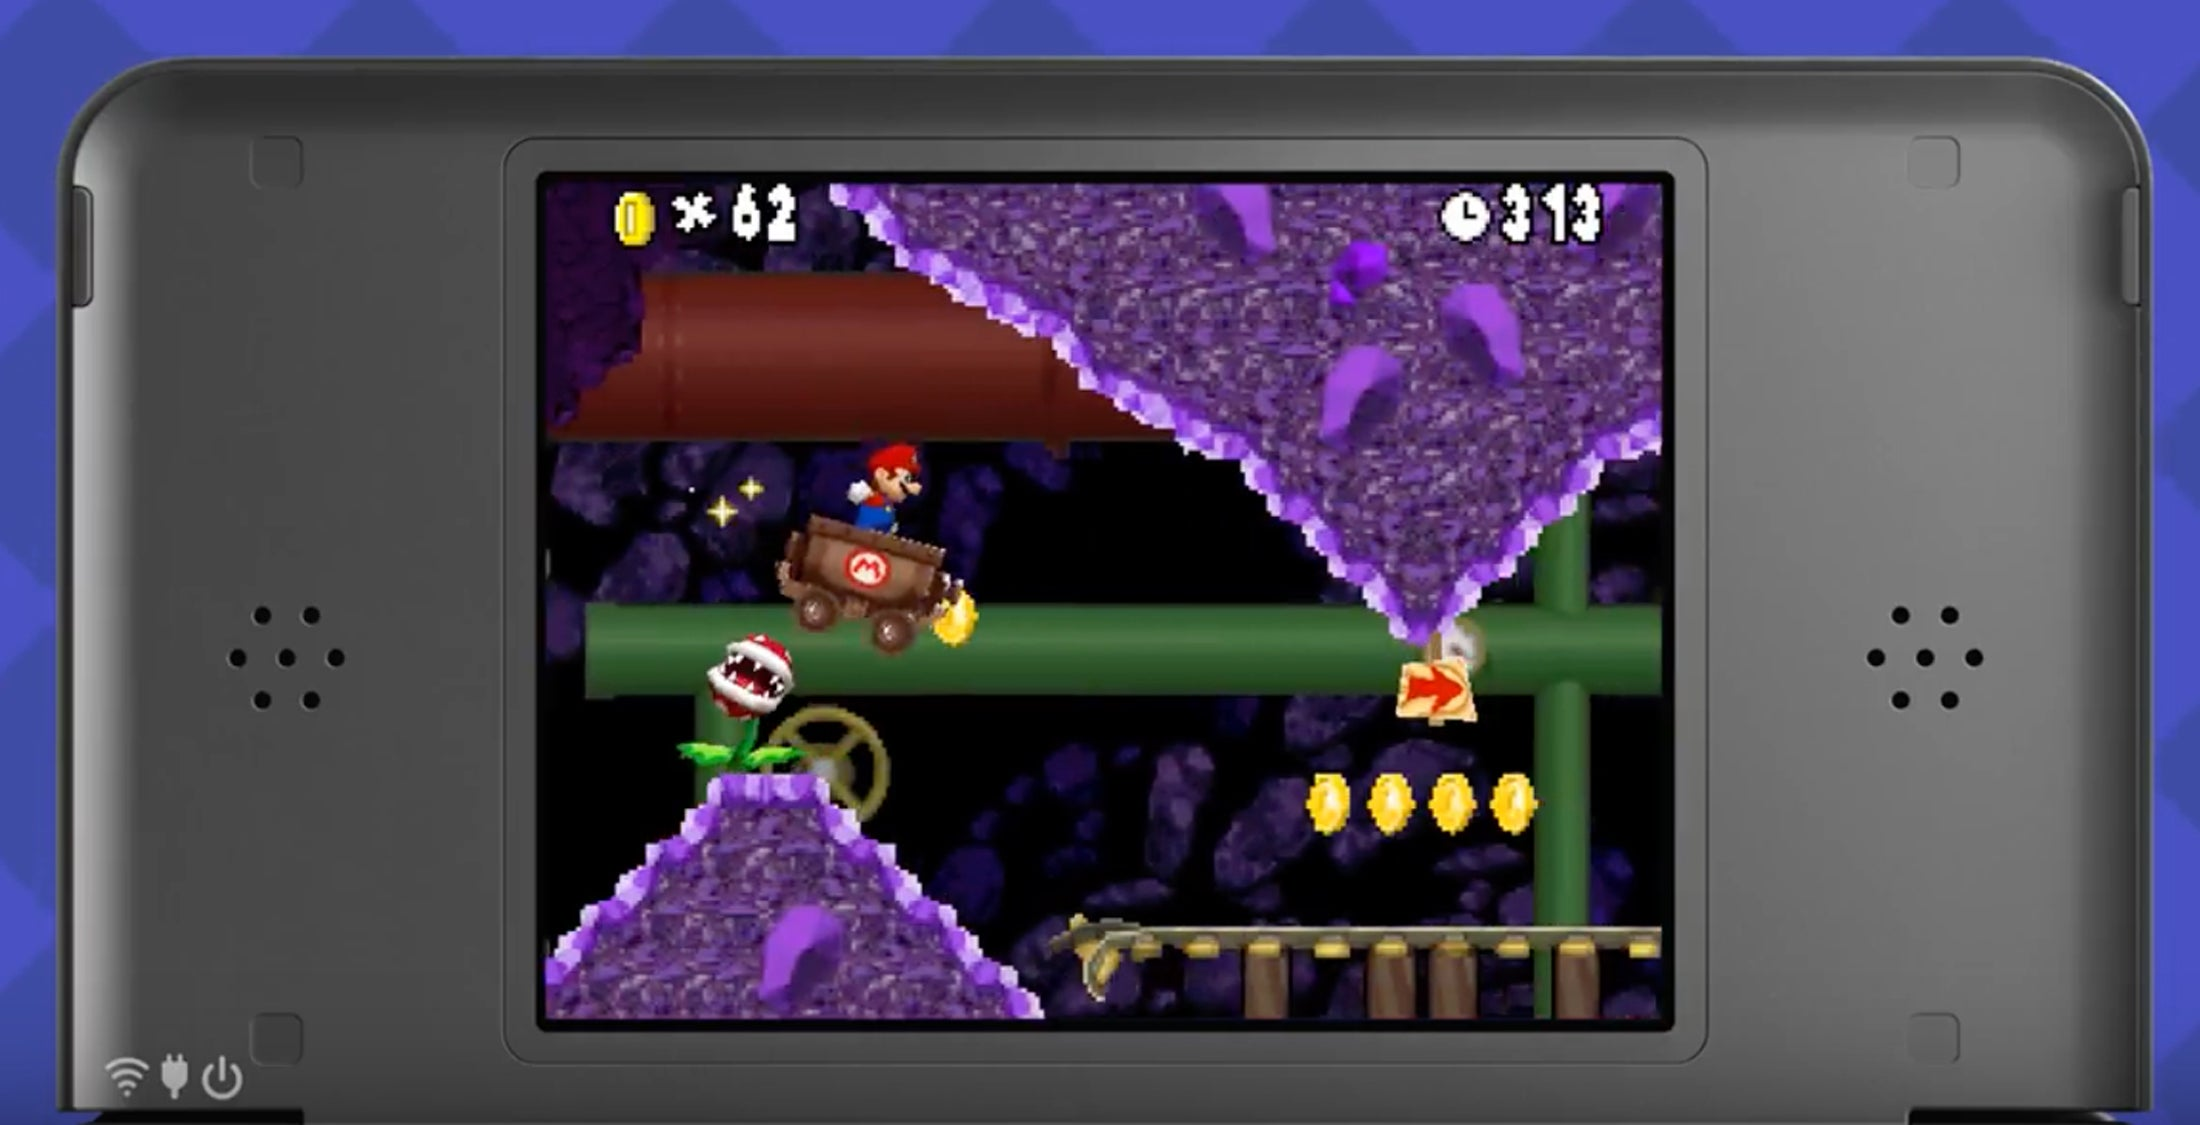 This classic Super Mario game just got 80 new levels - here's how to play | Trusted Reviews